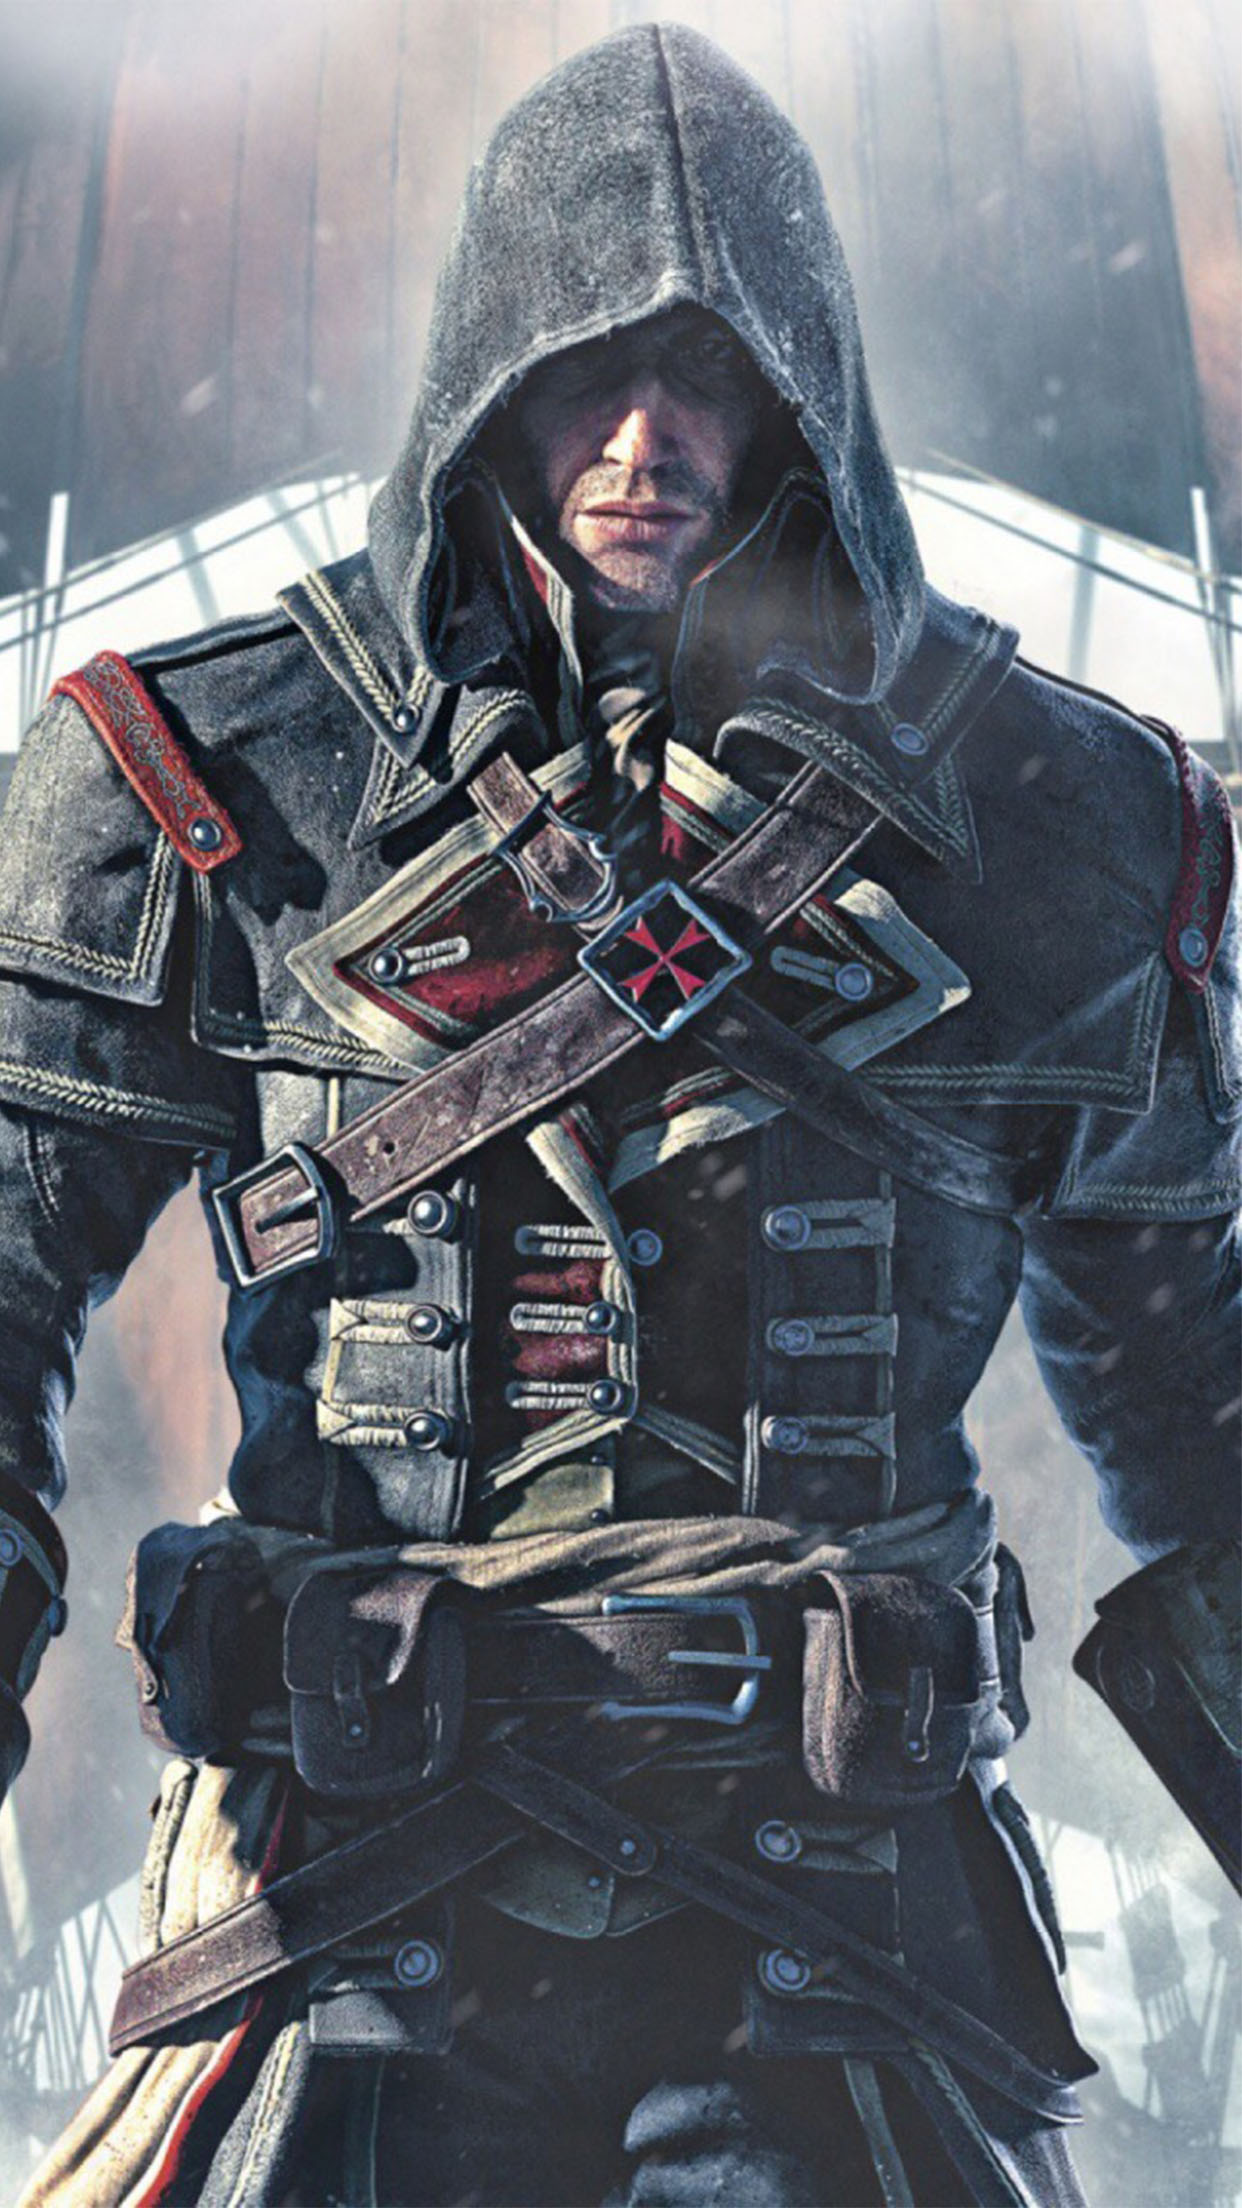 Assasins Creed Assassins Creed 1 3Wallpapers iPhone Parallax Assassins Creed 1